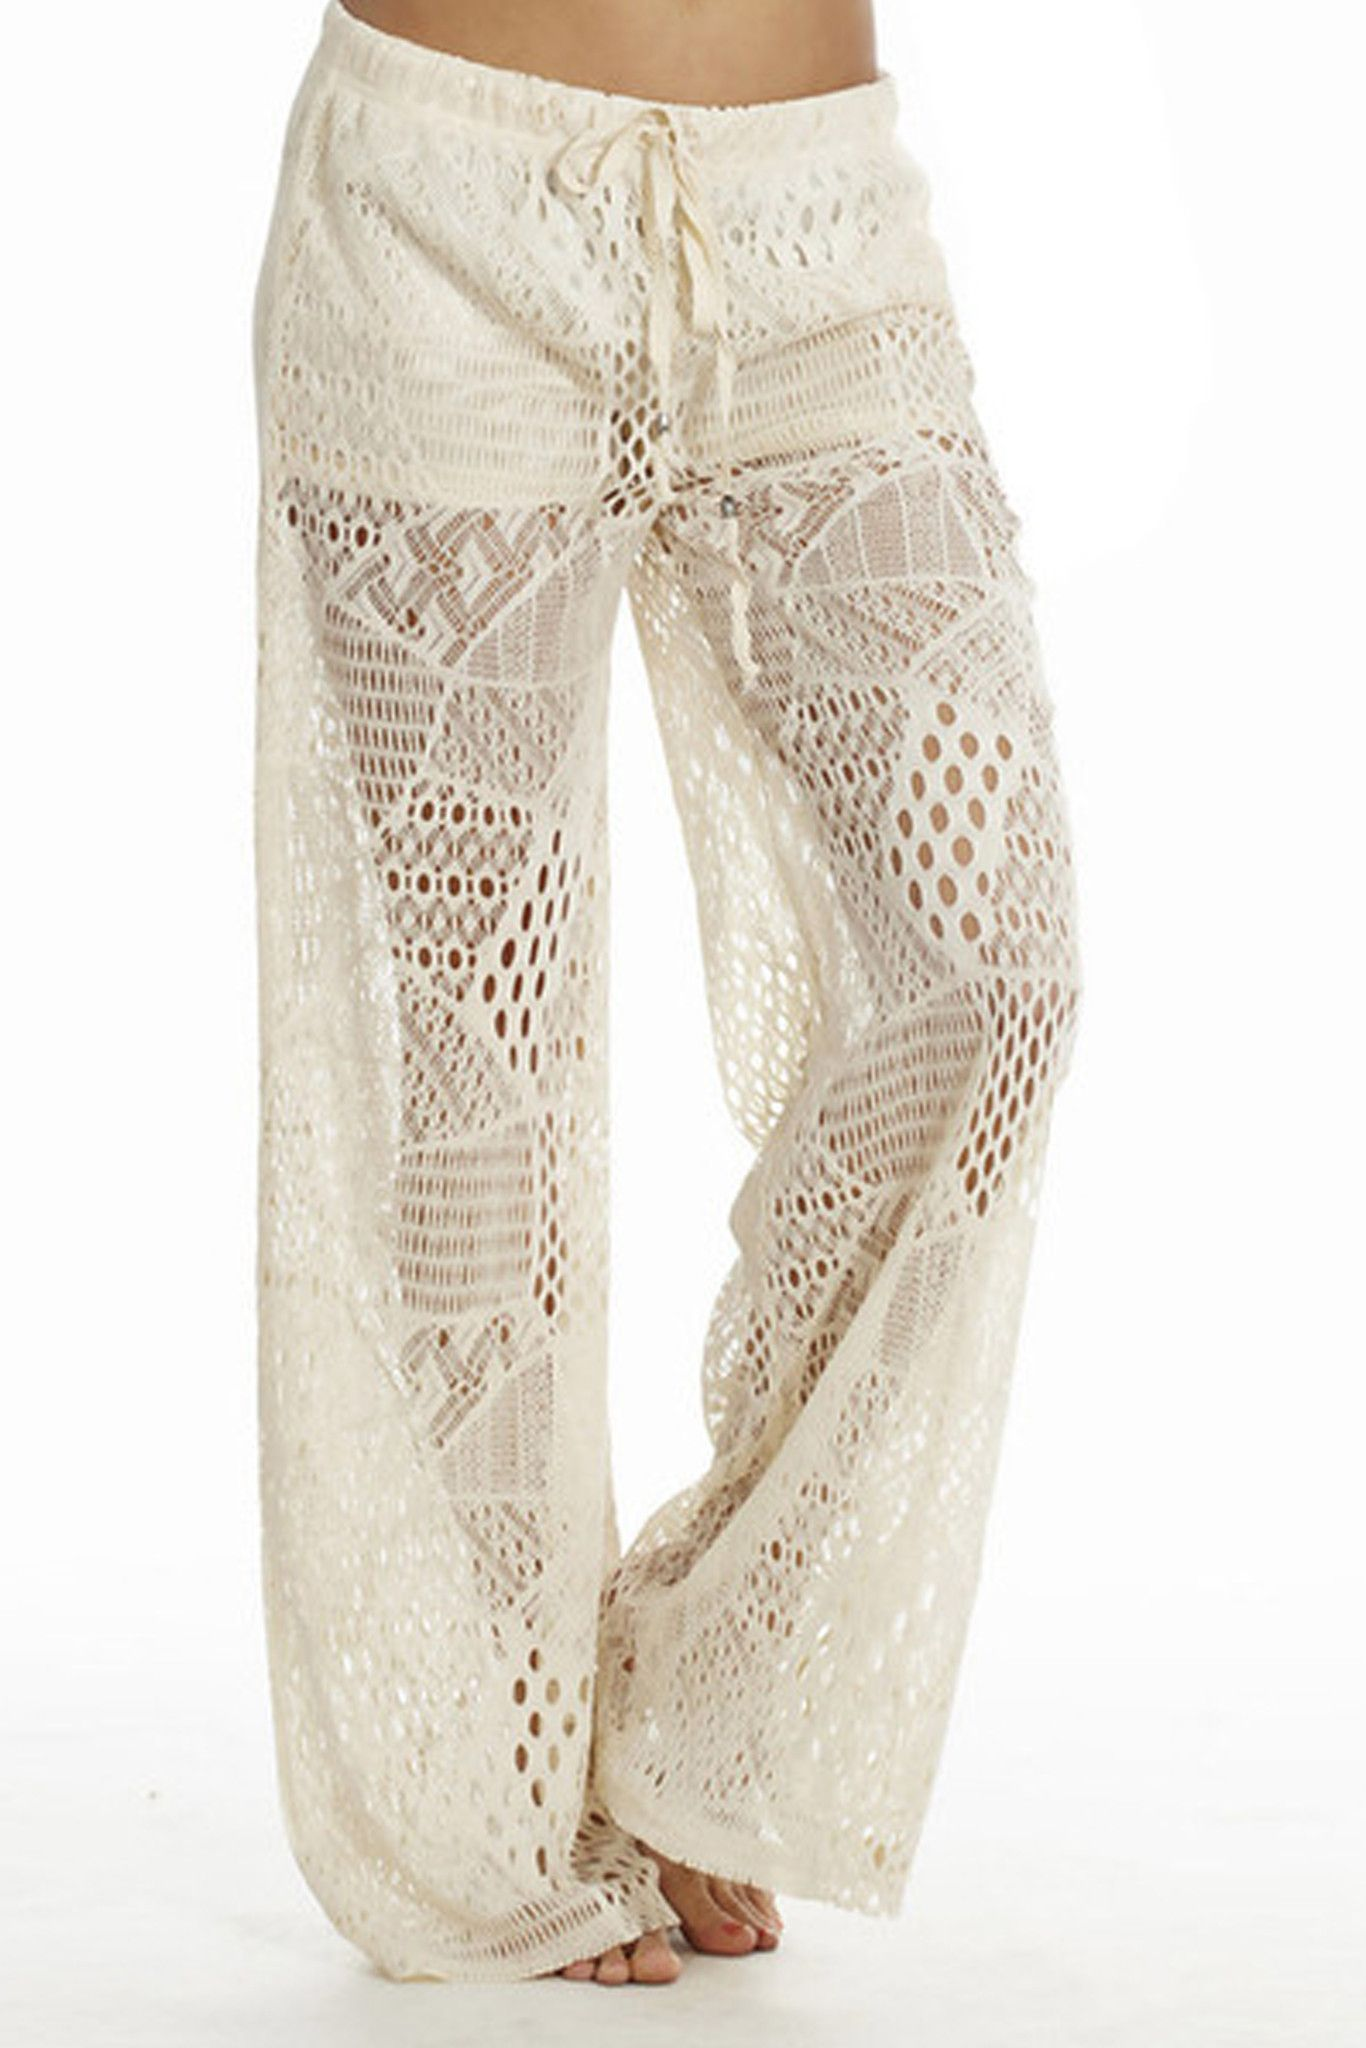 6b8be2049448f These gorgeous wide leg crochet Beach pants are perfect for the beach and  for any time of the year. These pants will flatter everyone who wears them.